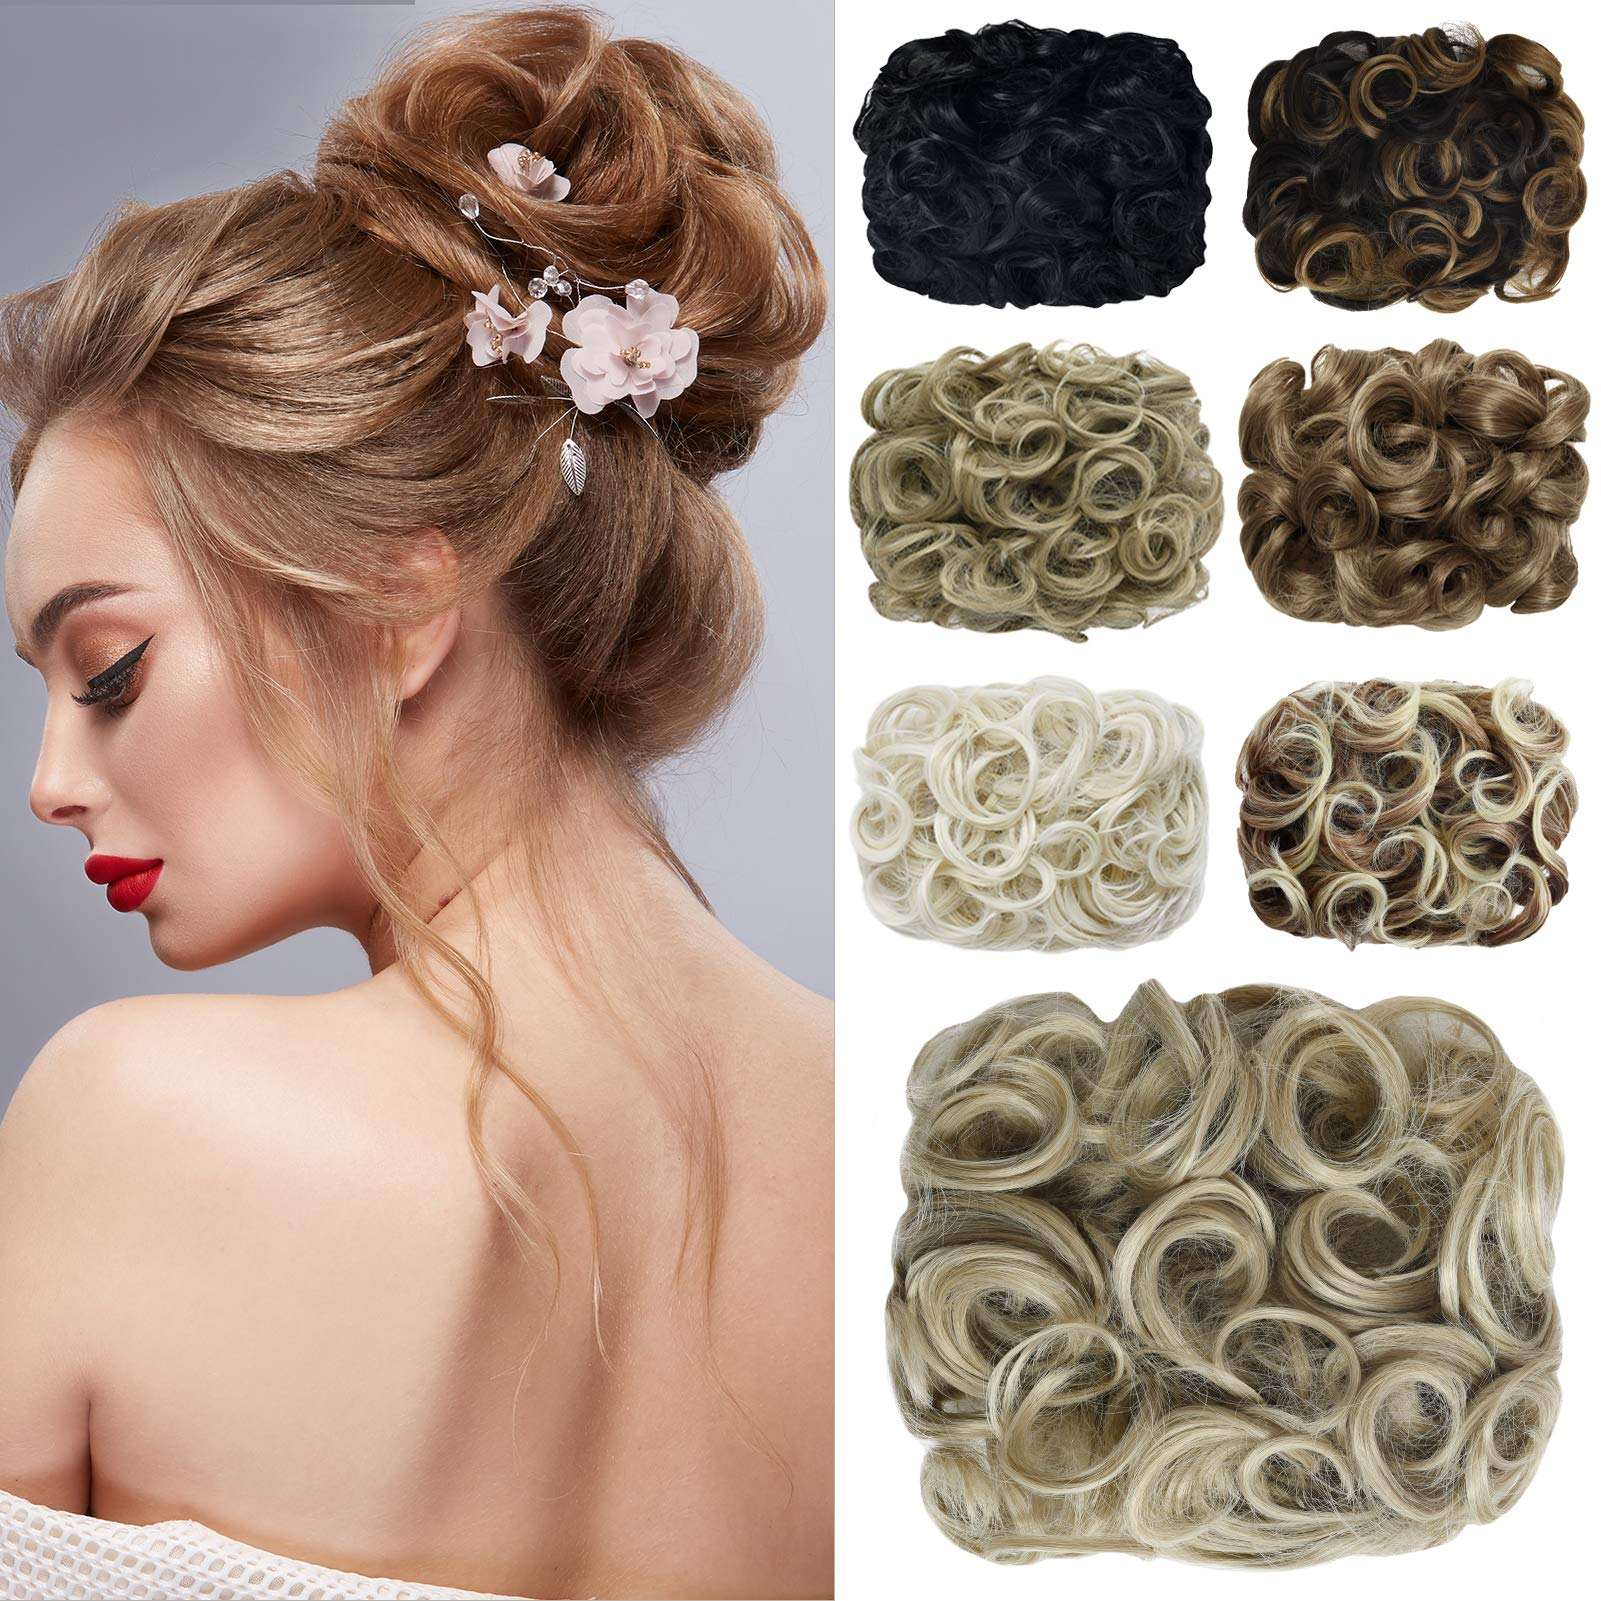 Yamel Messy Bun Scrunchie Combs Clip in Curly Stretch Updo Hair Pieces